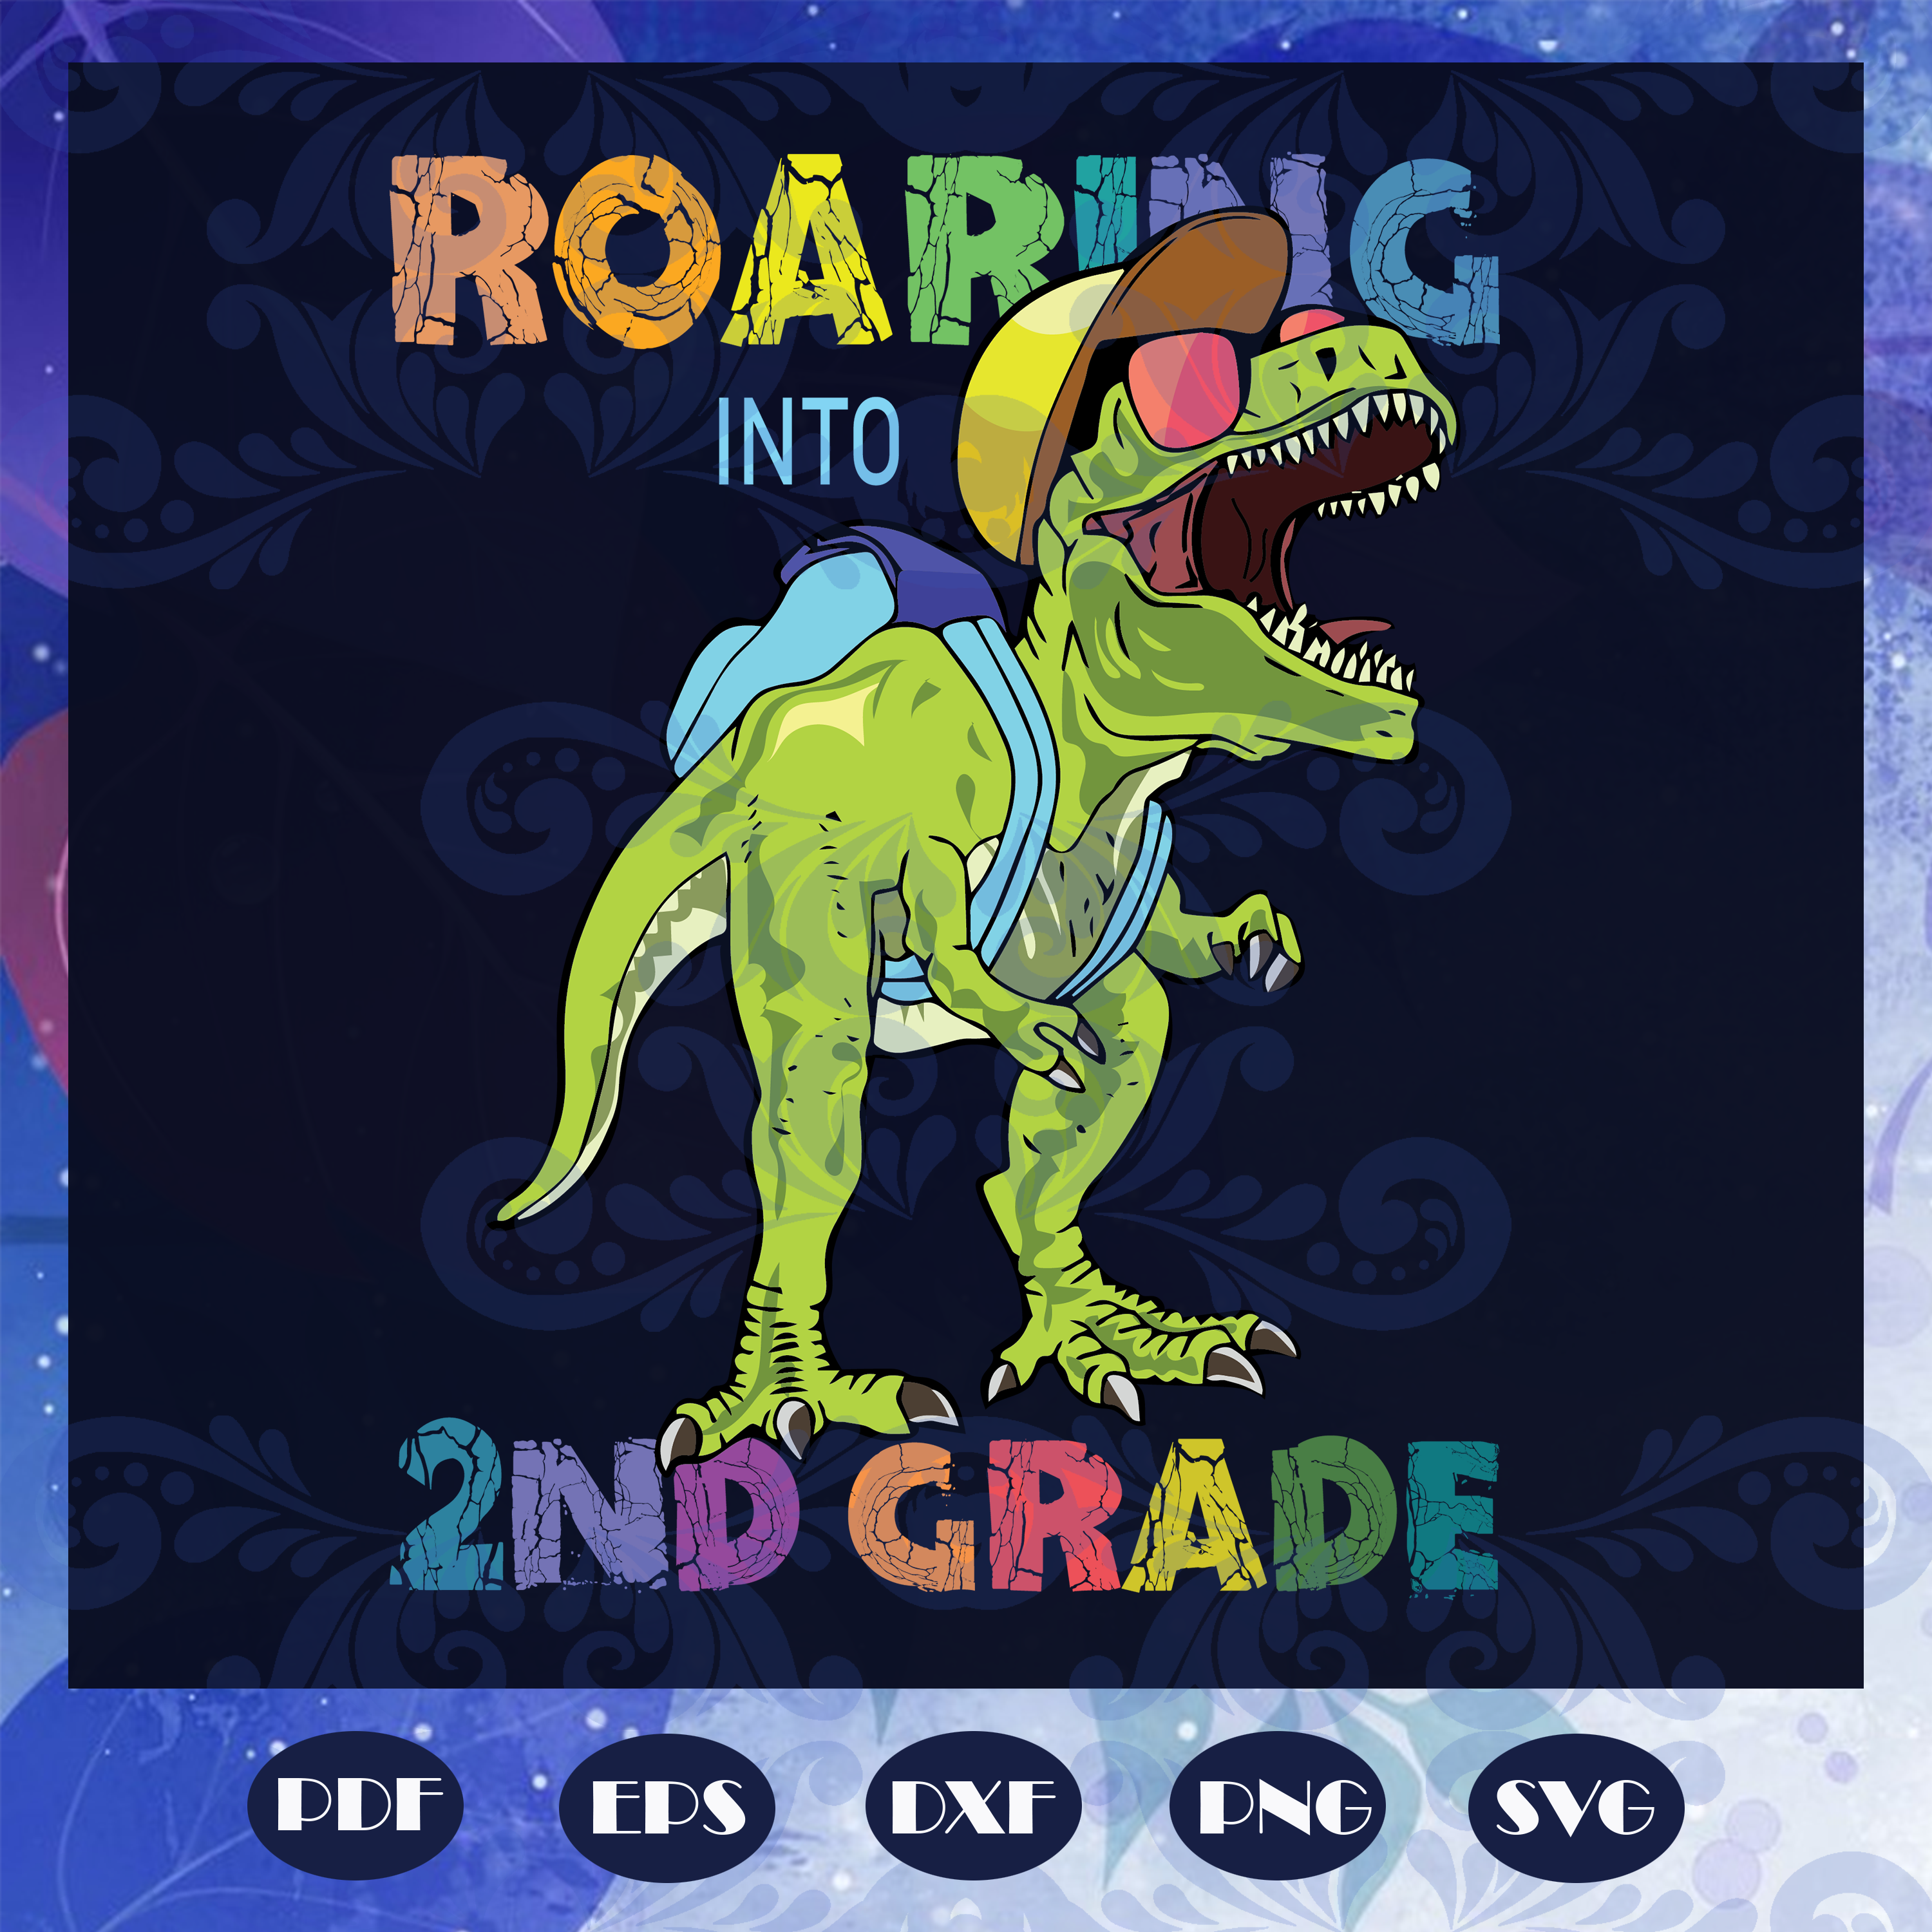 Roaring into 2nd grade svg, come to 2nd grade svg, 2nd grade svg, prepare for 2nd grade svg, students svg, primary school svg, class svg,dinosaur svg, back to school svg,  files for silhouette, files for cricut, svg, dxf, eps, png, instant download